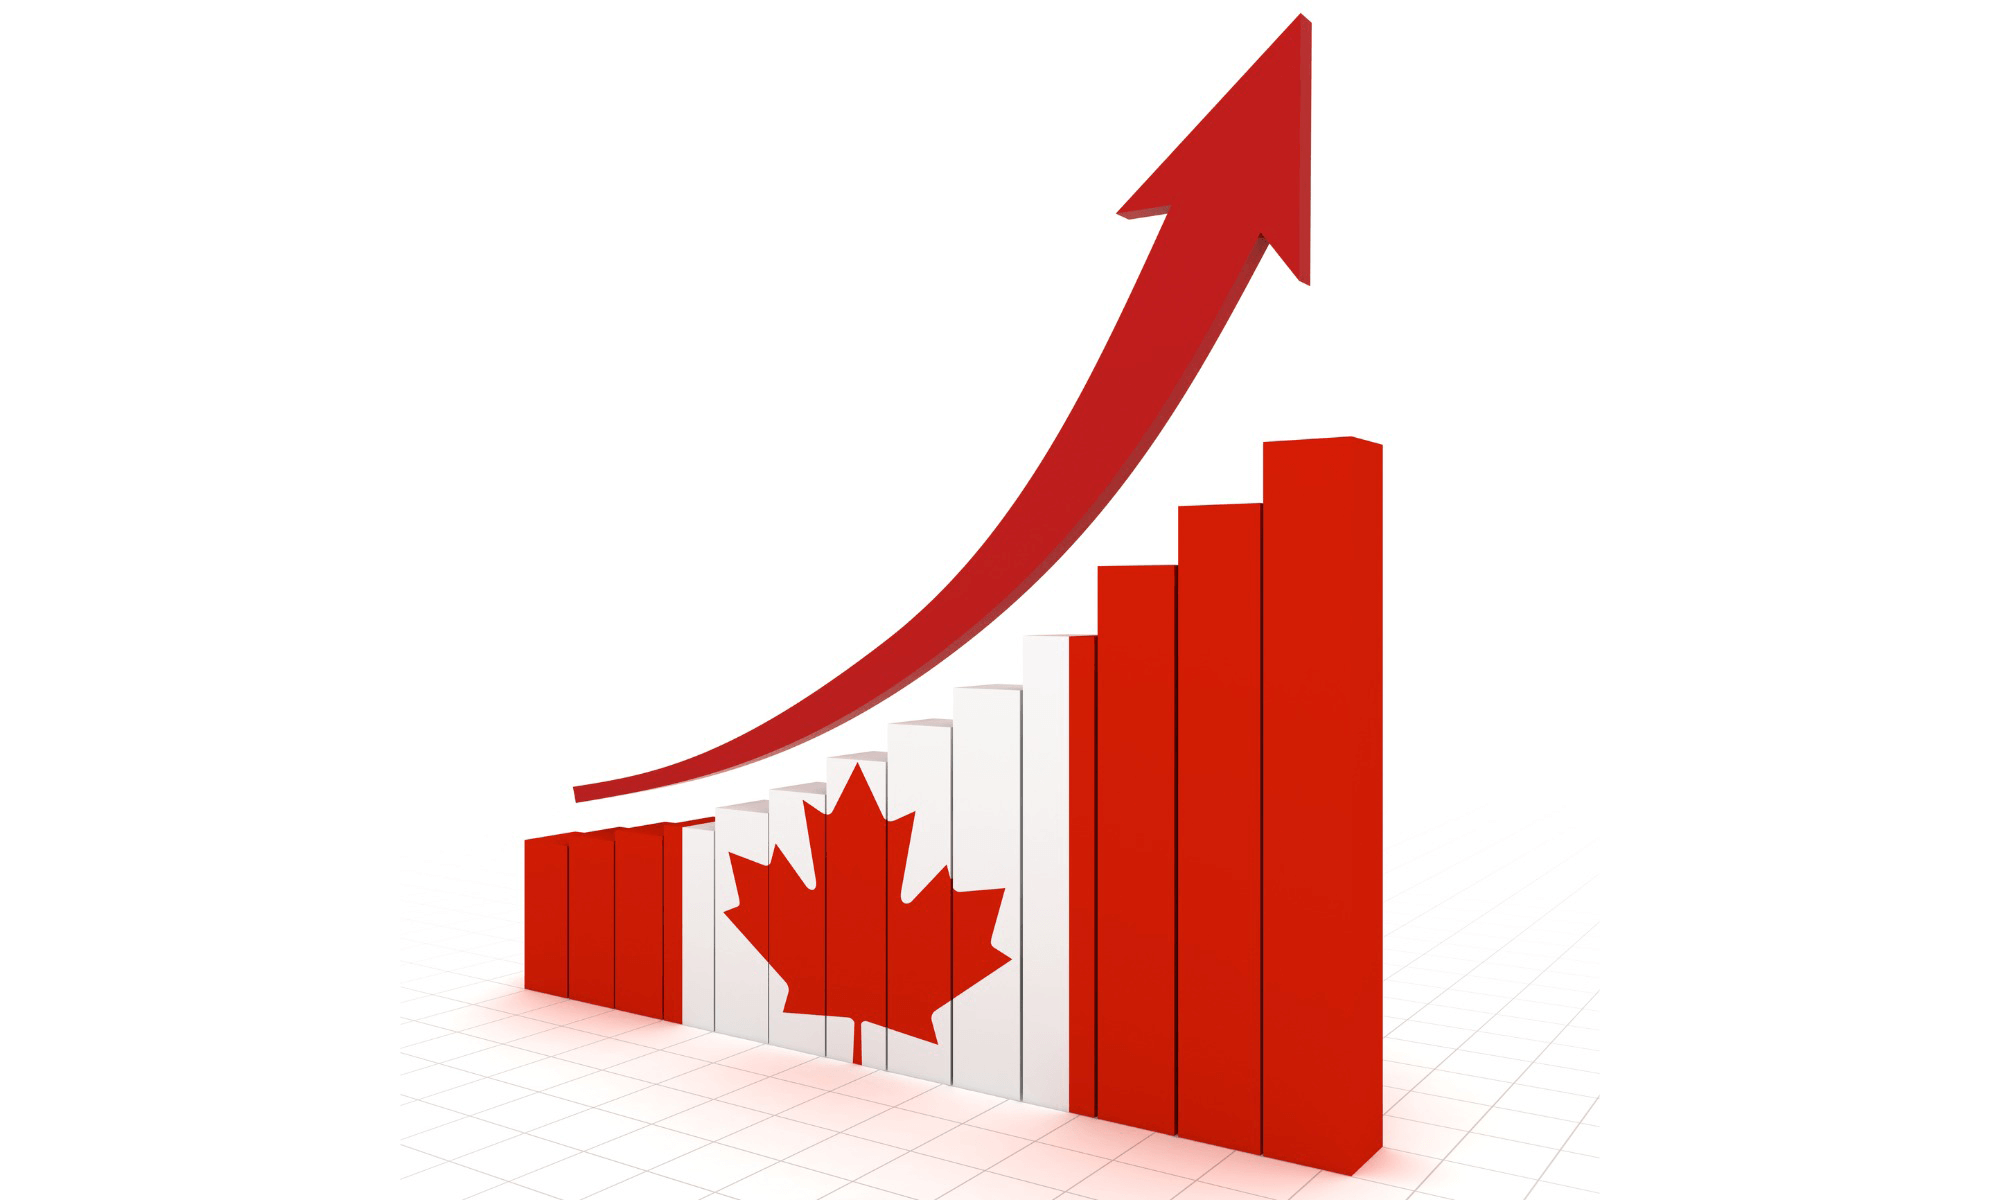 Here are some key tips on How to Buy Shares in Canada to boost your portfolio returns